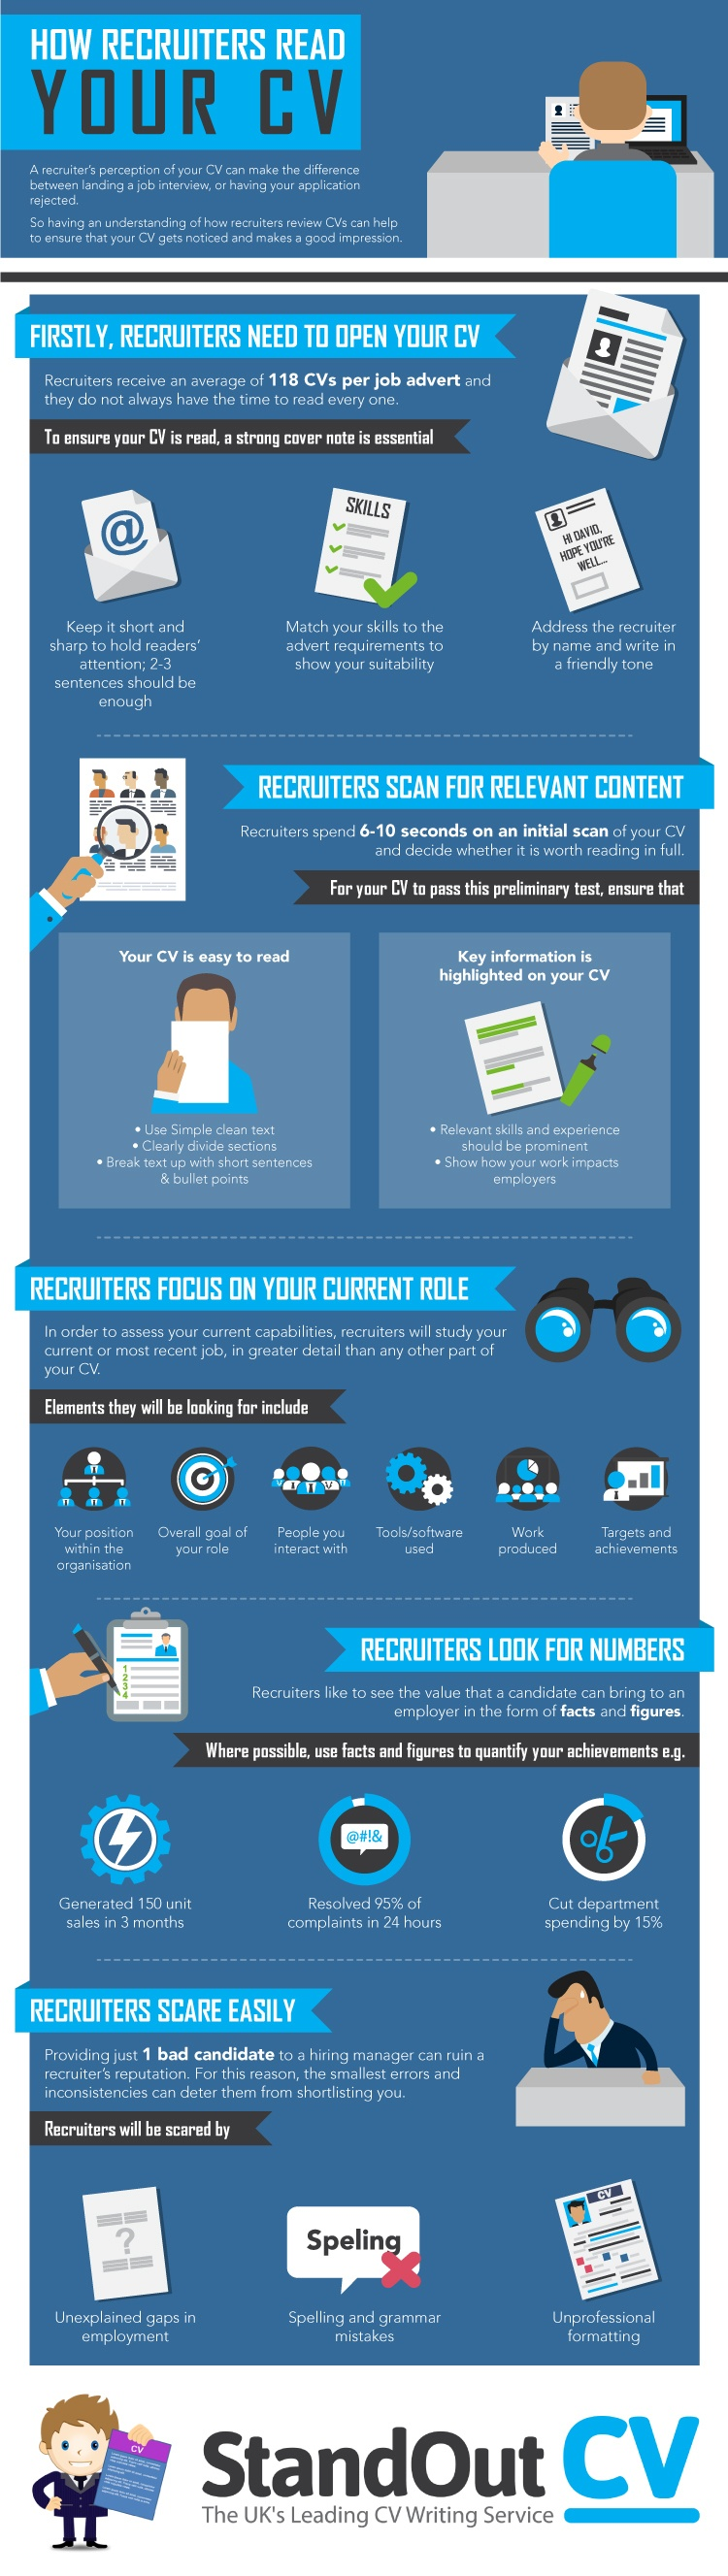 How Recruiters Read Your CV Infographic